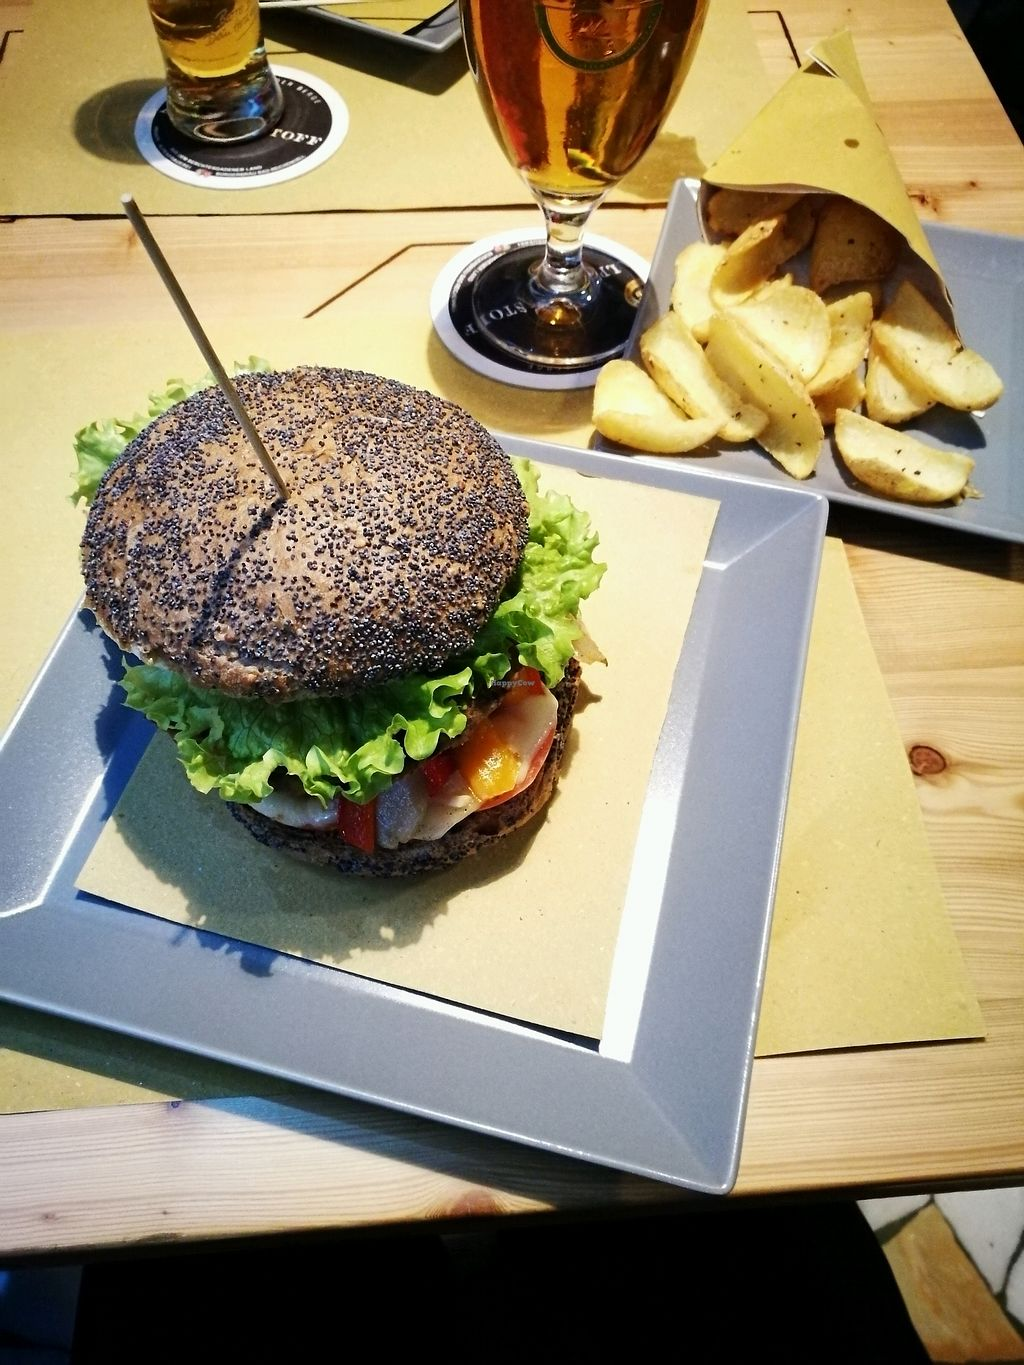 "Photo of Brenthaus Beer & Food  by <a href=""/members/profile/VegDre85"">VegDre85</a> <br/>chickpea burger <br/> January 5, 2018  - <a href='/contact/abuse/image/108264/343276'>Report</a>"